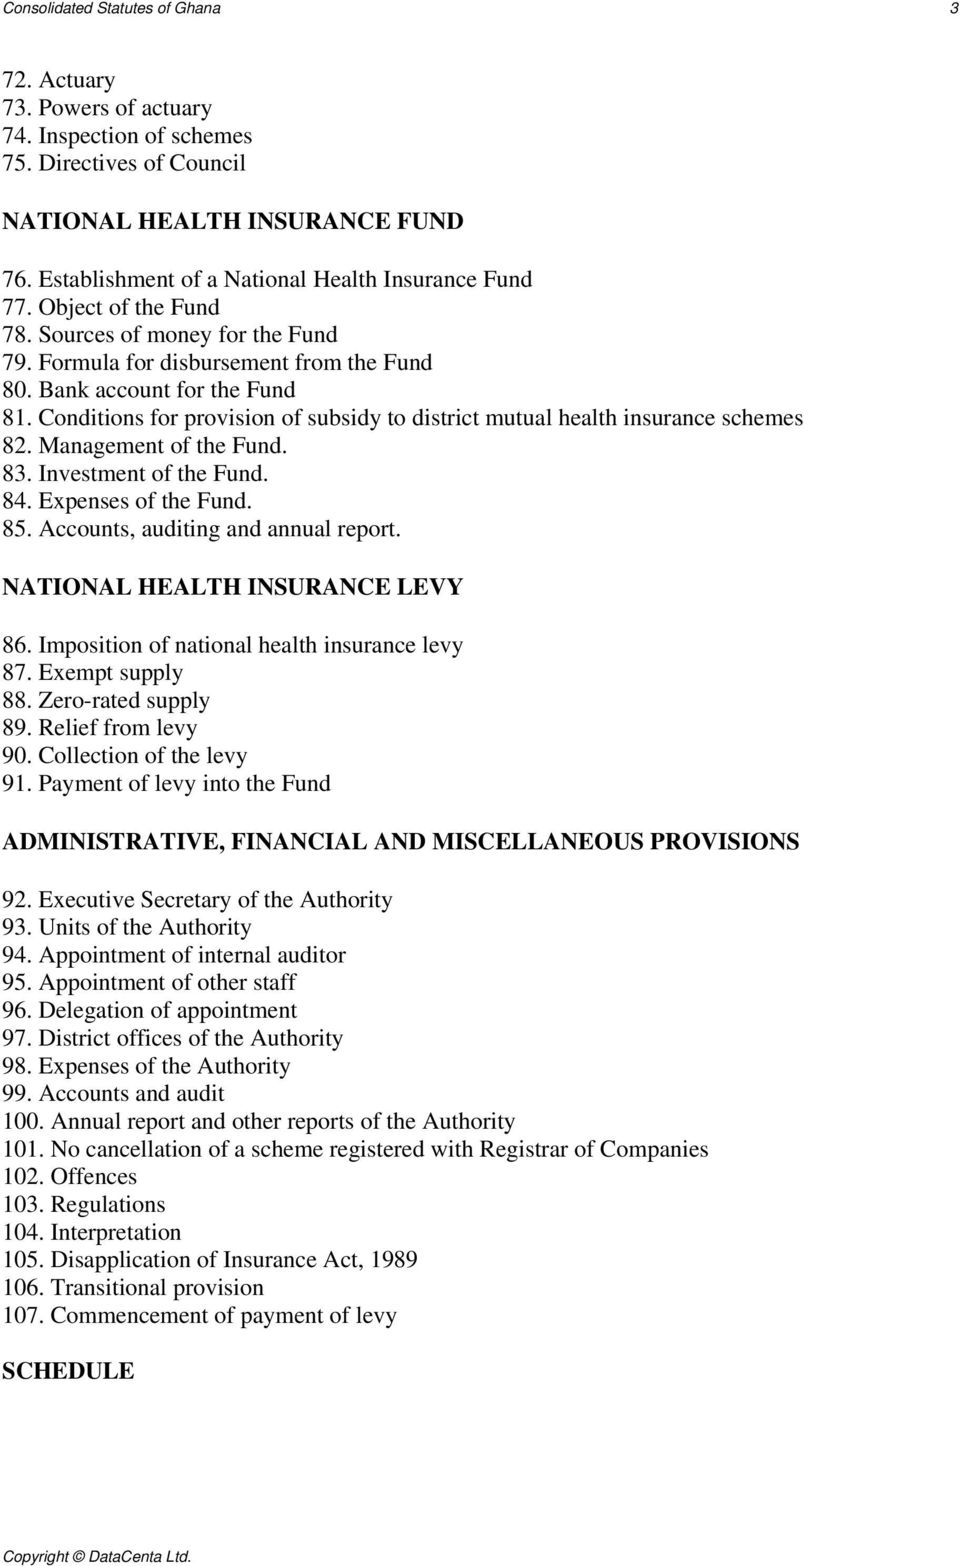 Conditions for provision of subsidy to district mutual health insurance schemes 82. Management of the Fund. 83. Investment of the Fund. 84. Expenses of the Fund. 85.